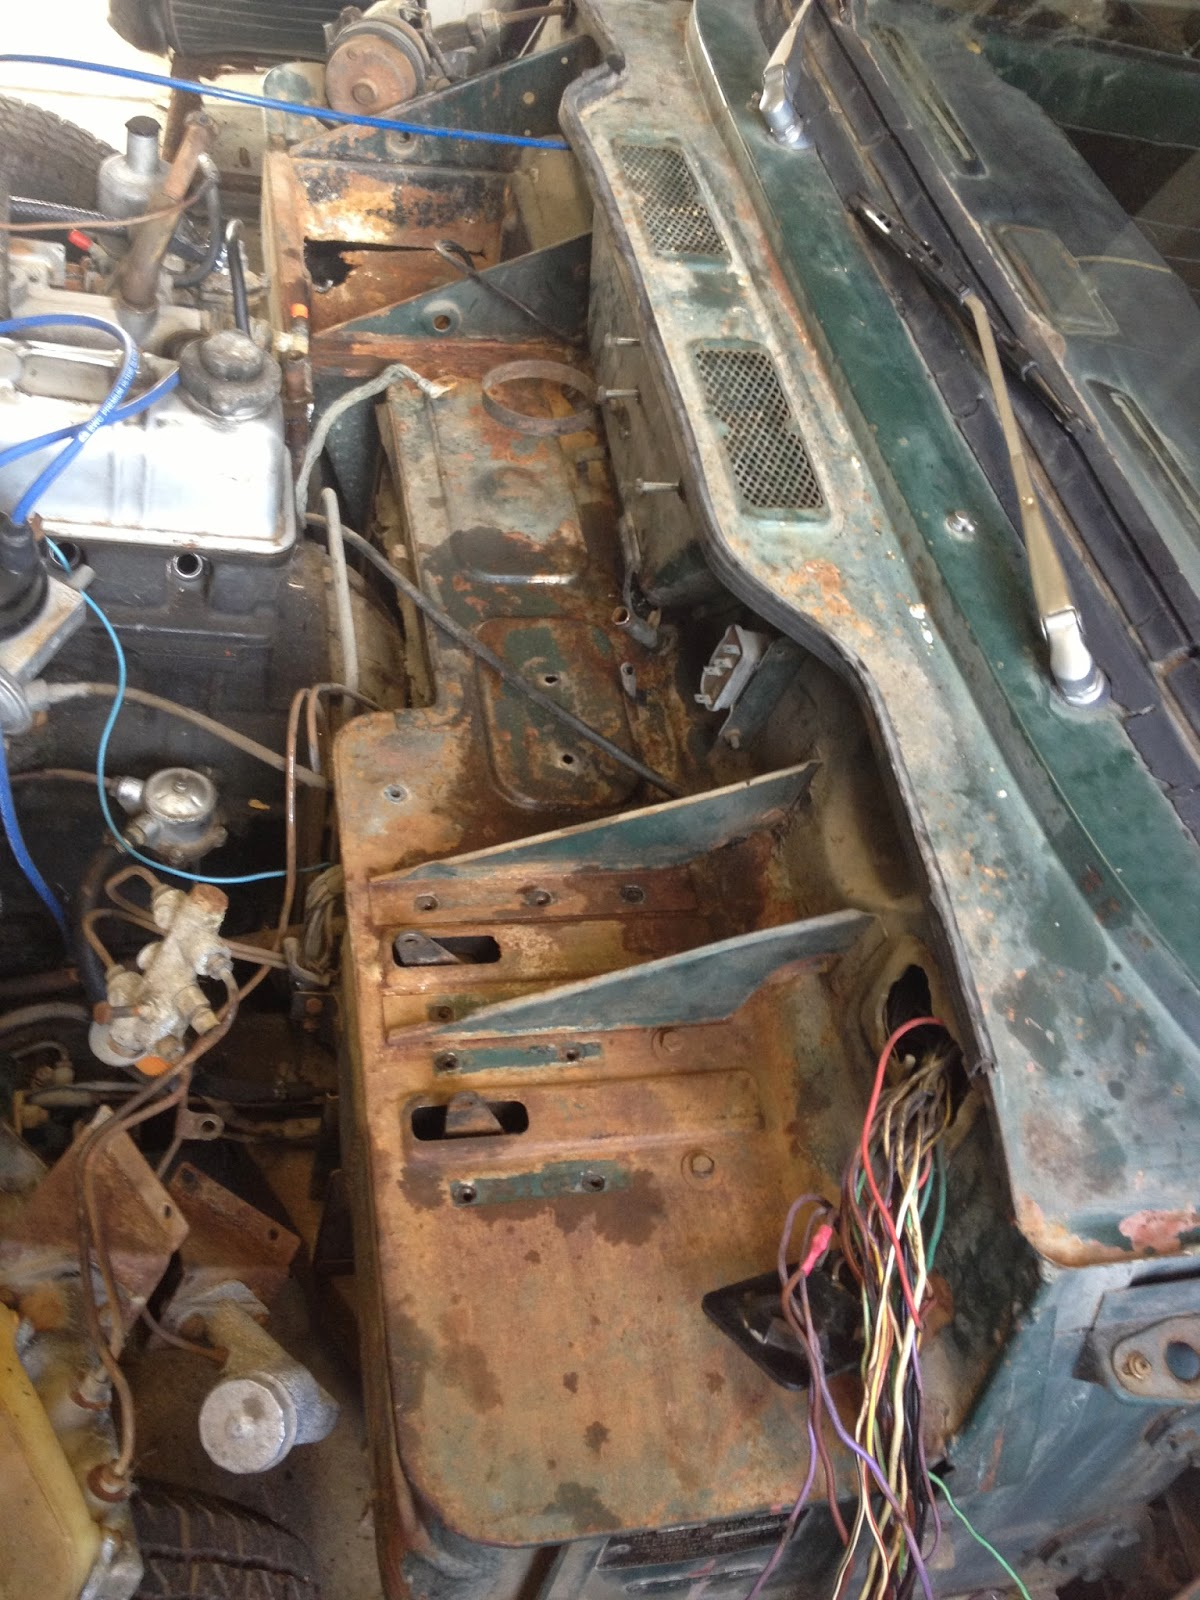 1969 Triumph Spitfire Mk3 Project Wiring Woes Here We Go Again Lucas Harness Is Another View Of The Colorful Each Wire Will Be Looked At Individually